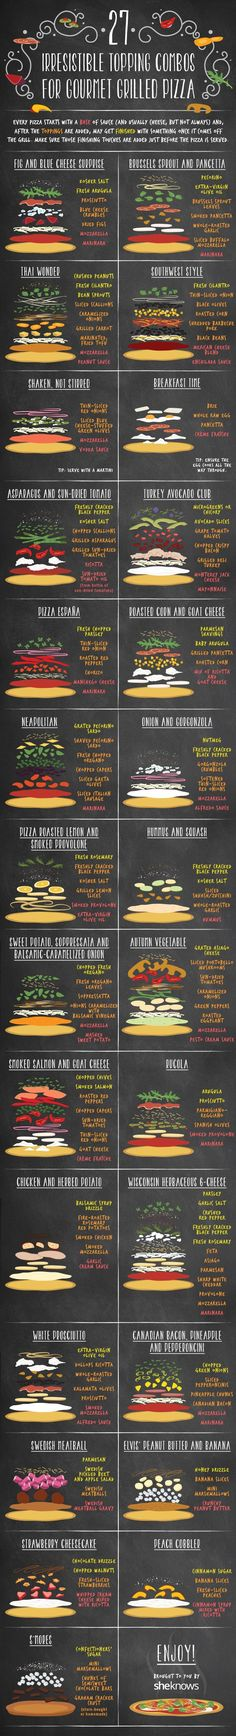 Killer pizza topping combinations to help you make restaurant-quality pie at home